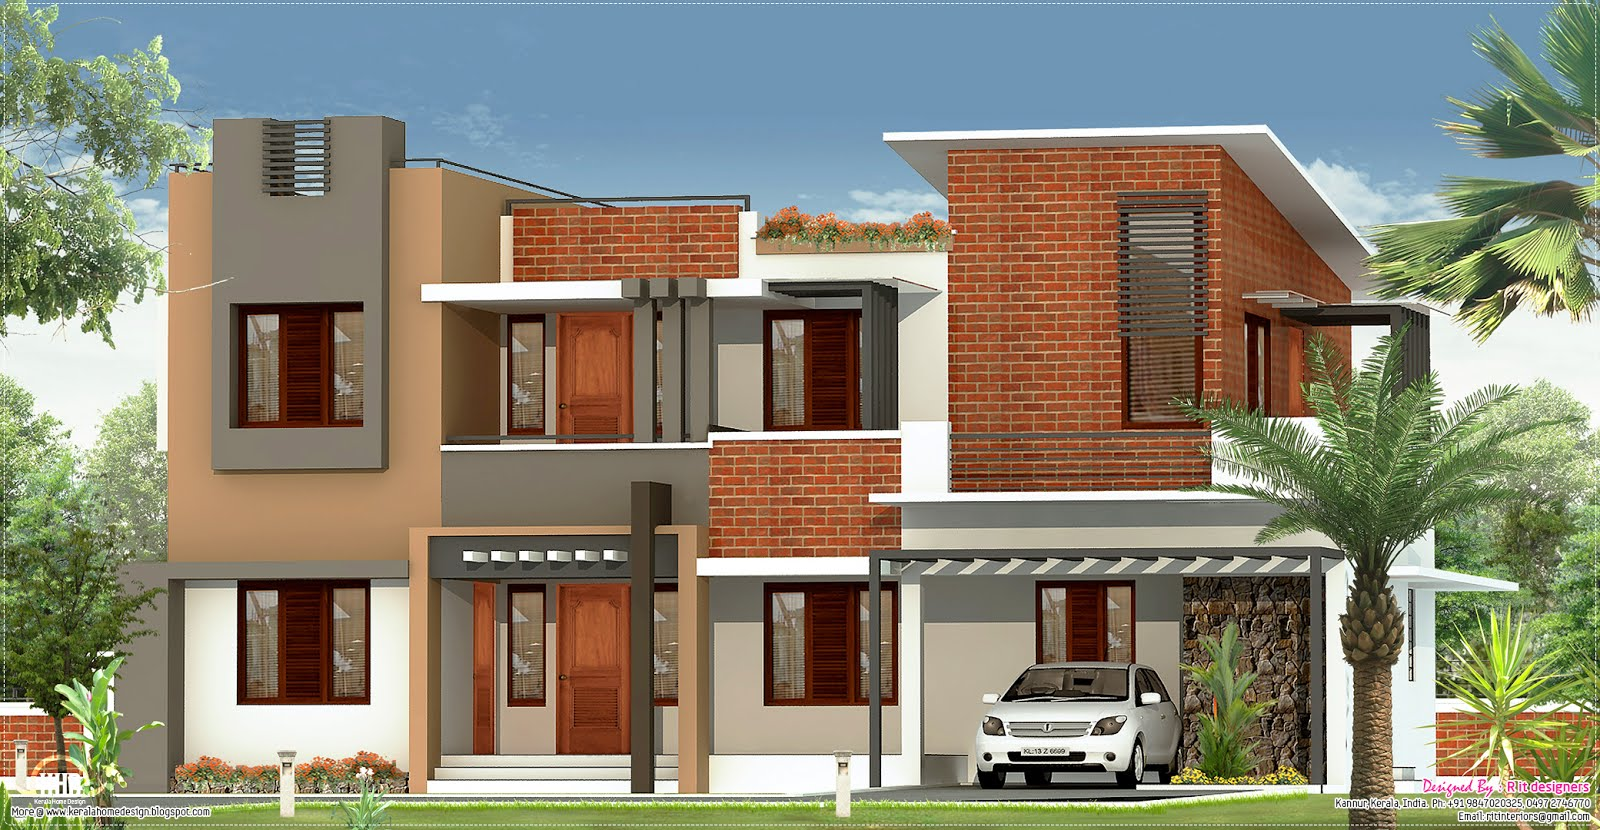 2226 flat roof villa kerala home design and - Flat roof home designs ...